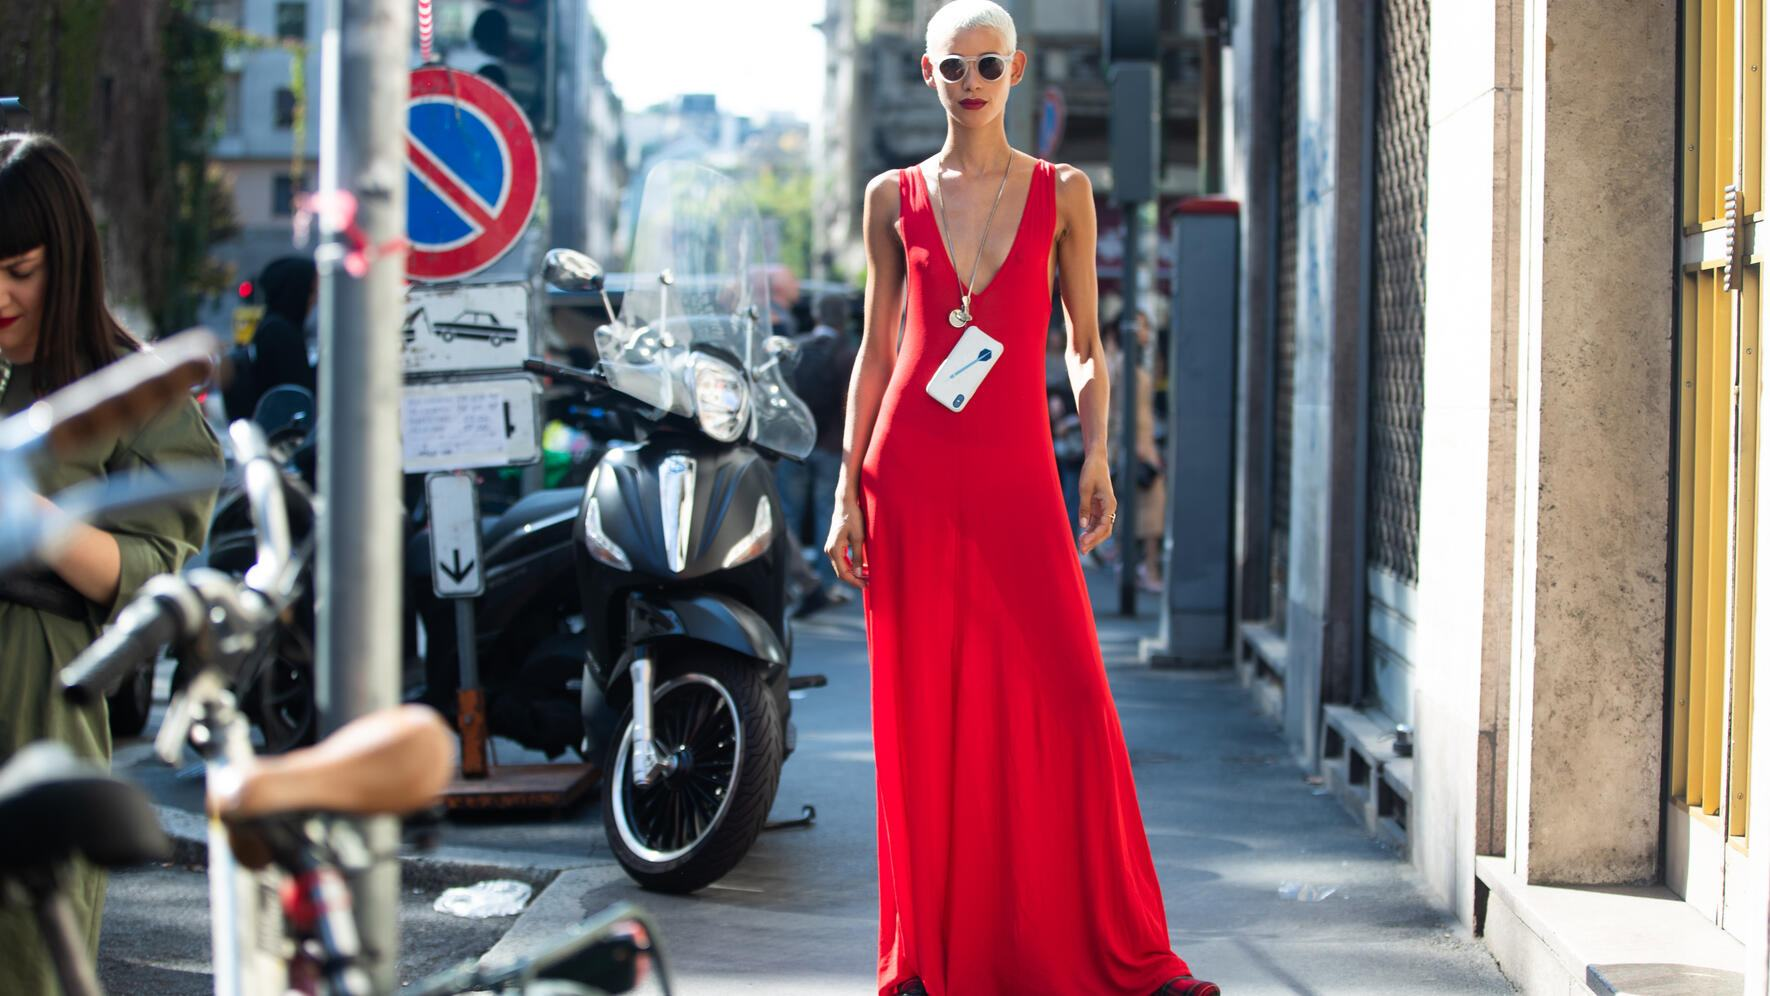 MILAN, ITALY - SEPTEMBER 23:  Model Dilone wears white sunglasses, a red sleeveless dress and her iPhone around her neck after the Dolce & Gabbana show during Milan Fashion Week Spring/Summer 2019 on September 23, 2018 in Milan, Italy.